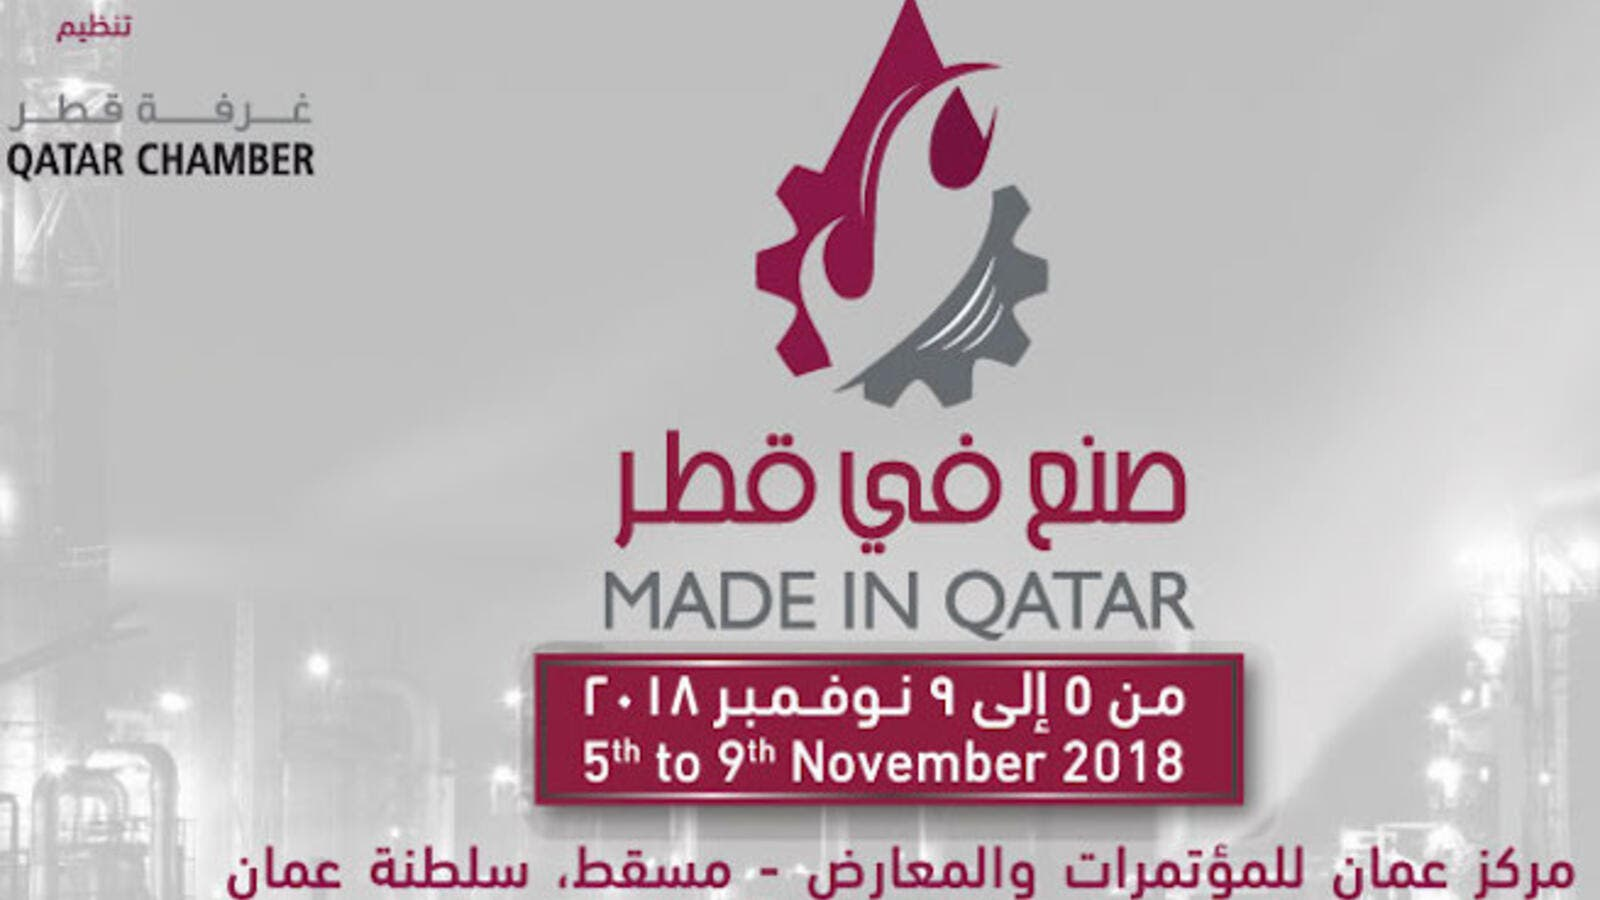 Qatari business owners are interested in identifying investment opportunities in the industrial sectors of Oman. (Made In Qatar)